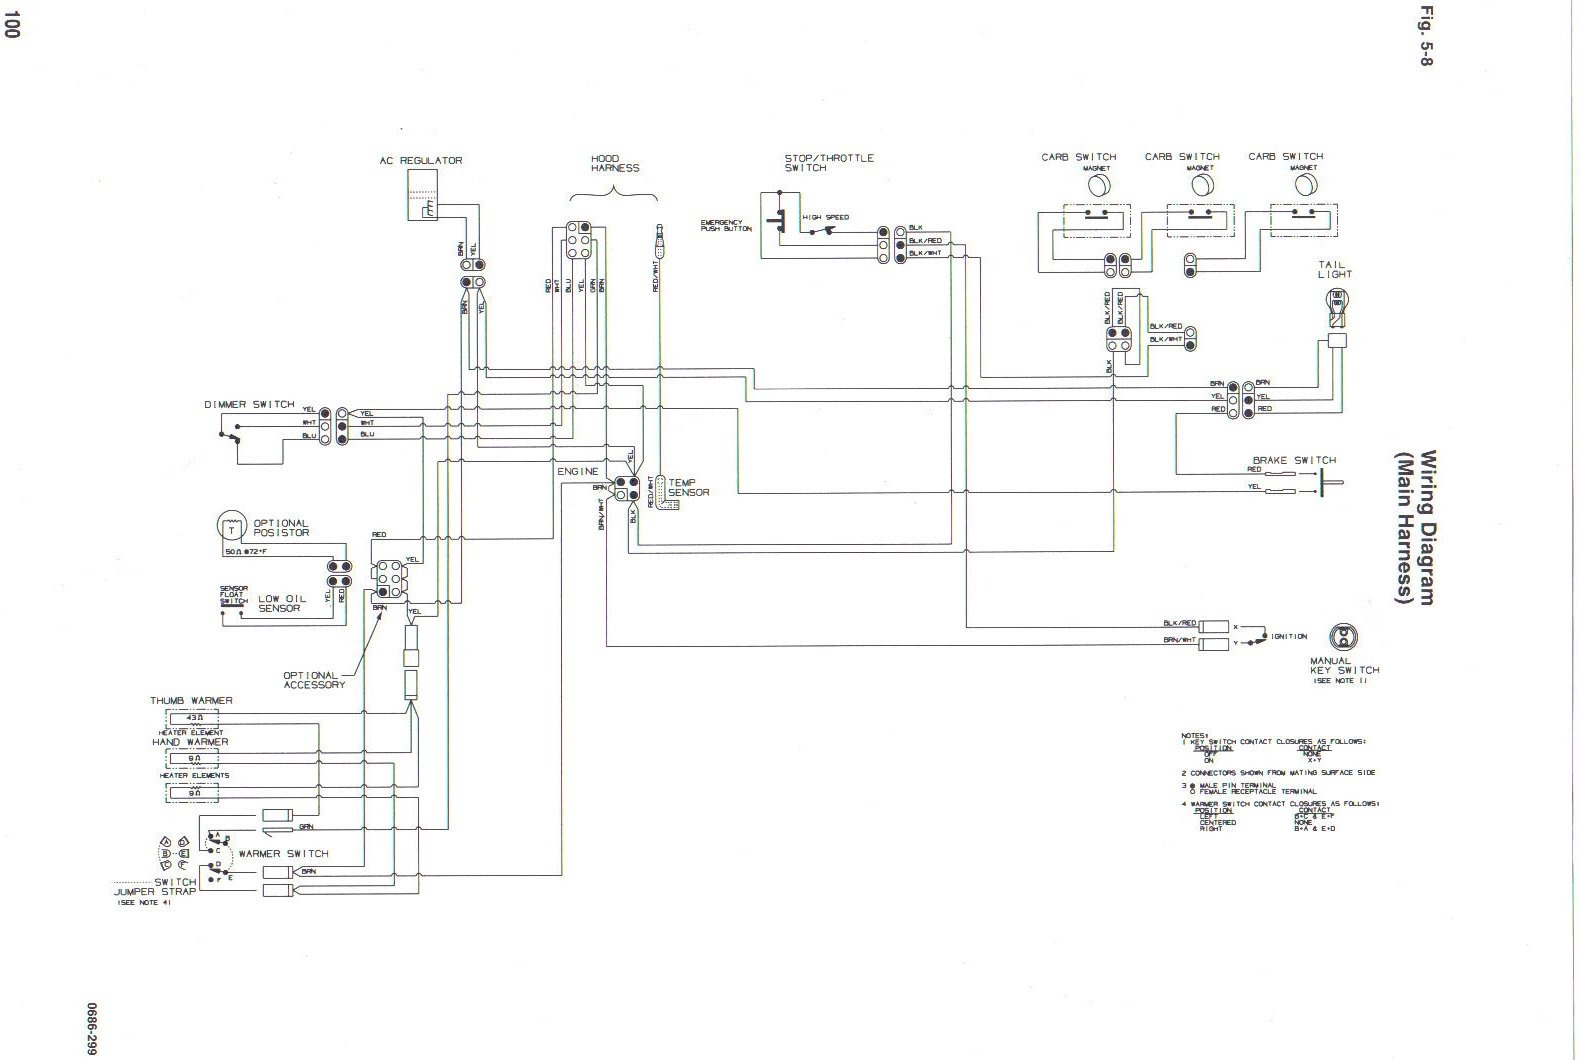 [DIAGRAM] D17 Wiring Diagram In pdf and cdr files format